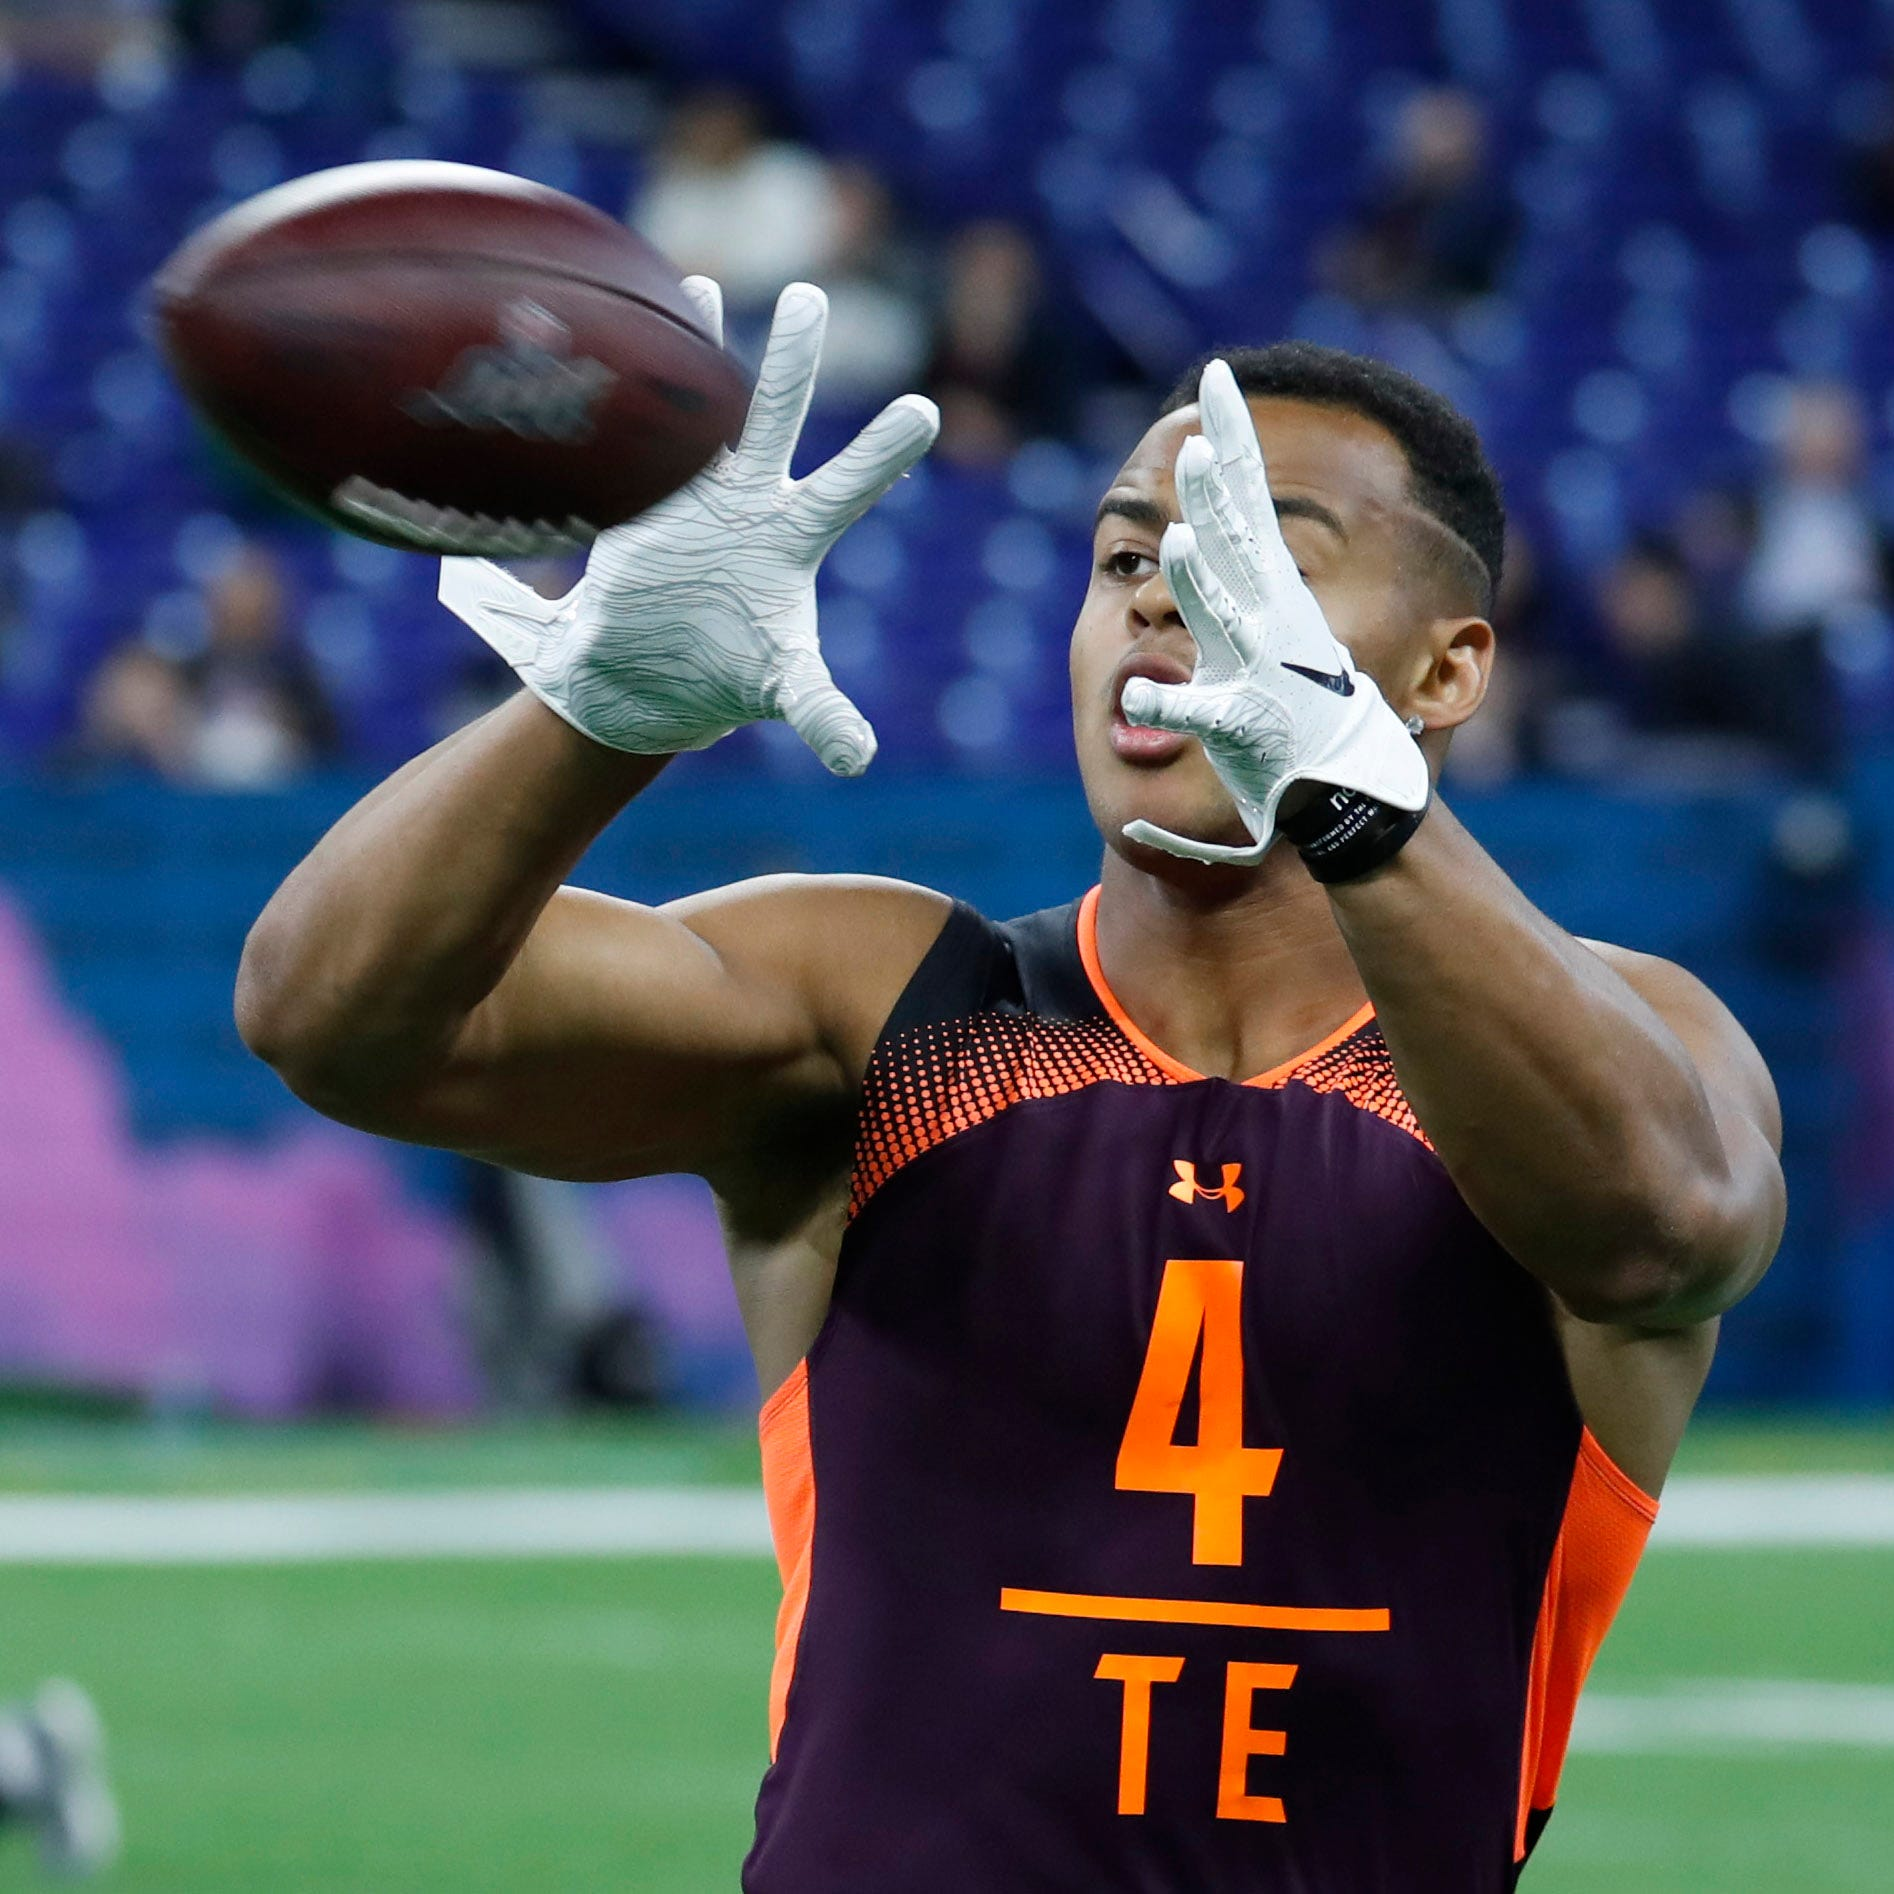 NFL mock draft 2019: Former Iowa TE Noah Fant moves up in latest projection